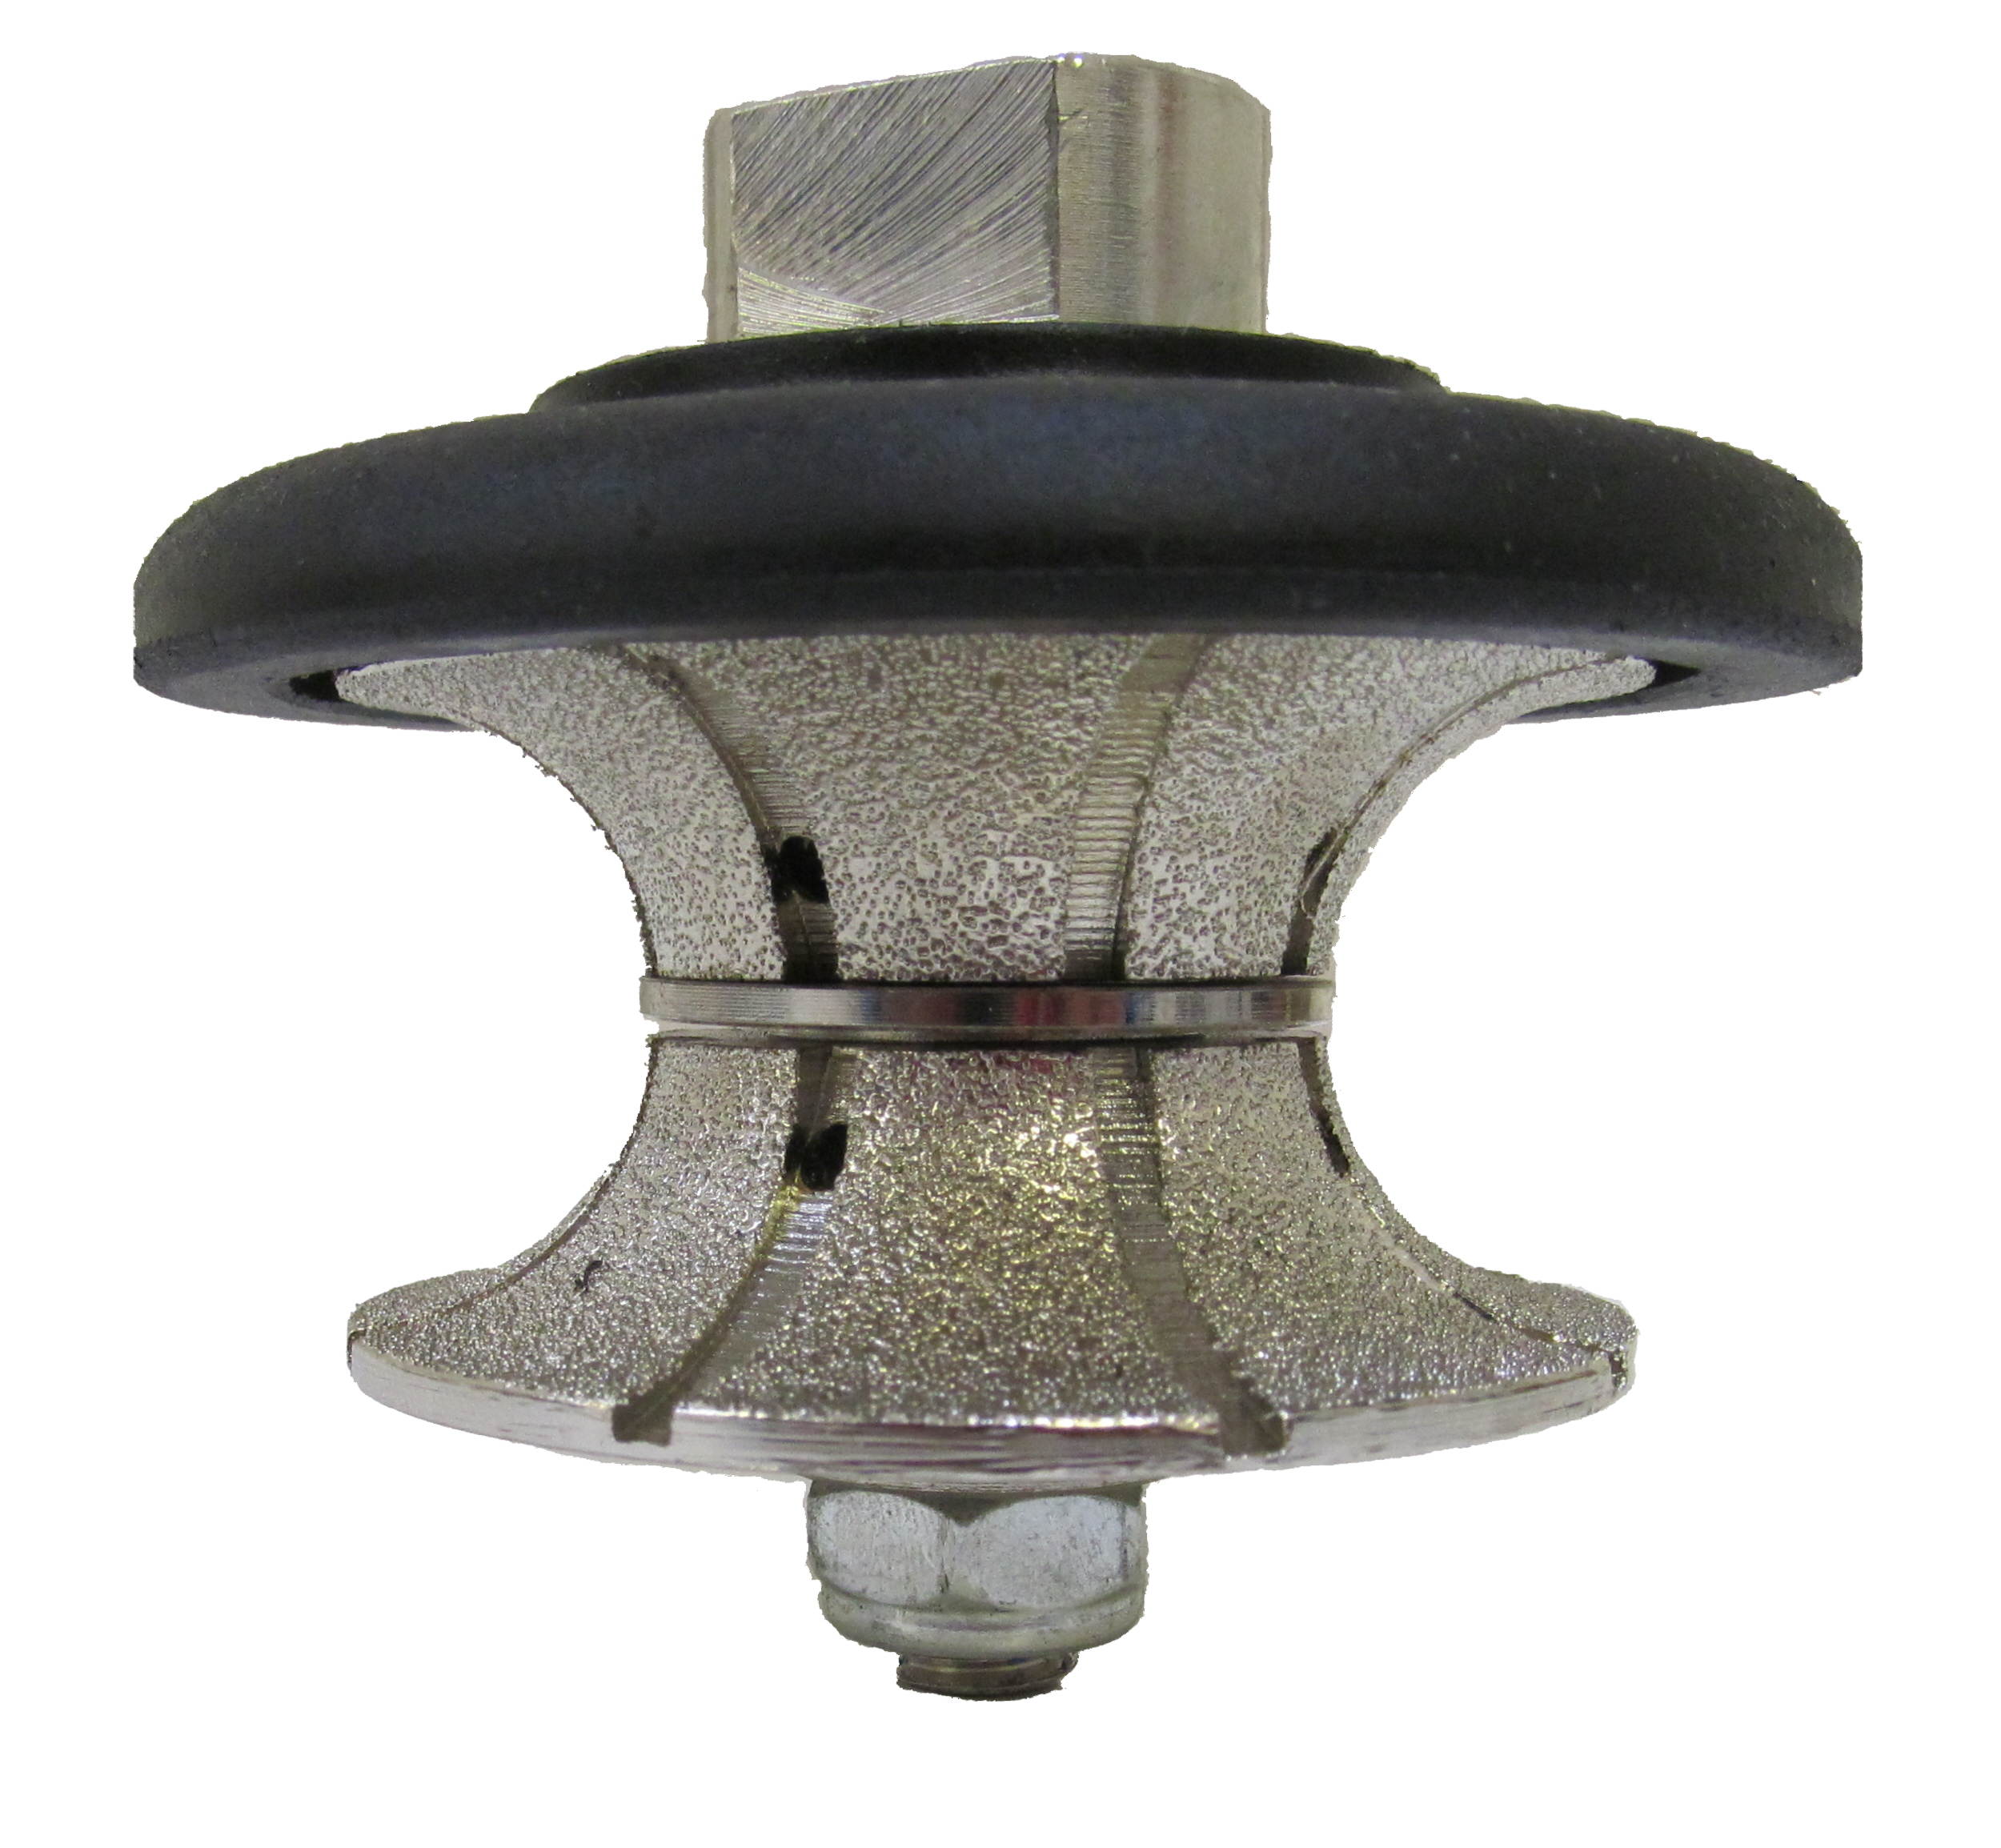 Diamond Router For Granite